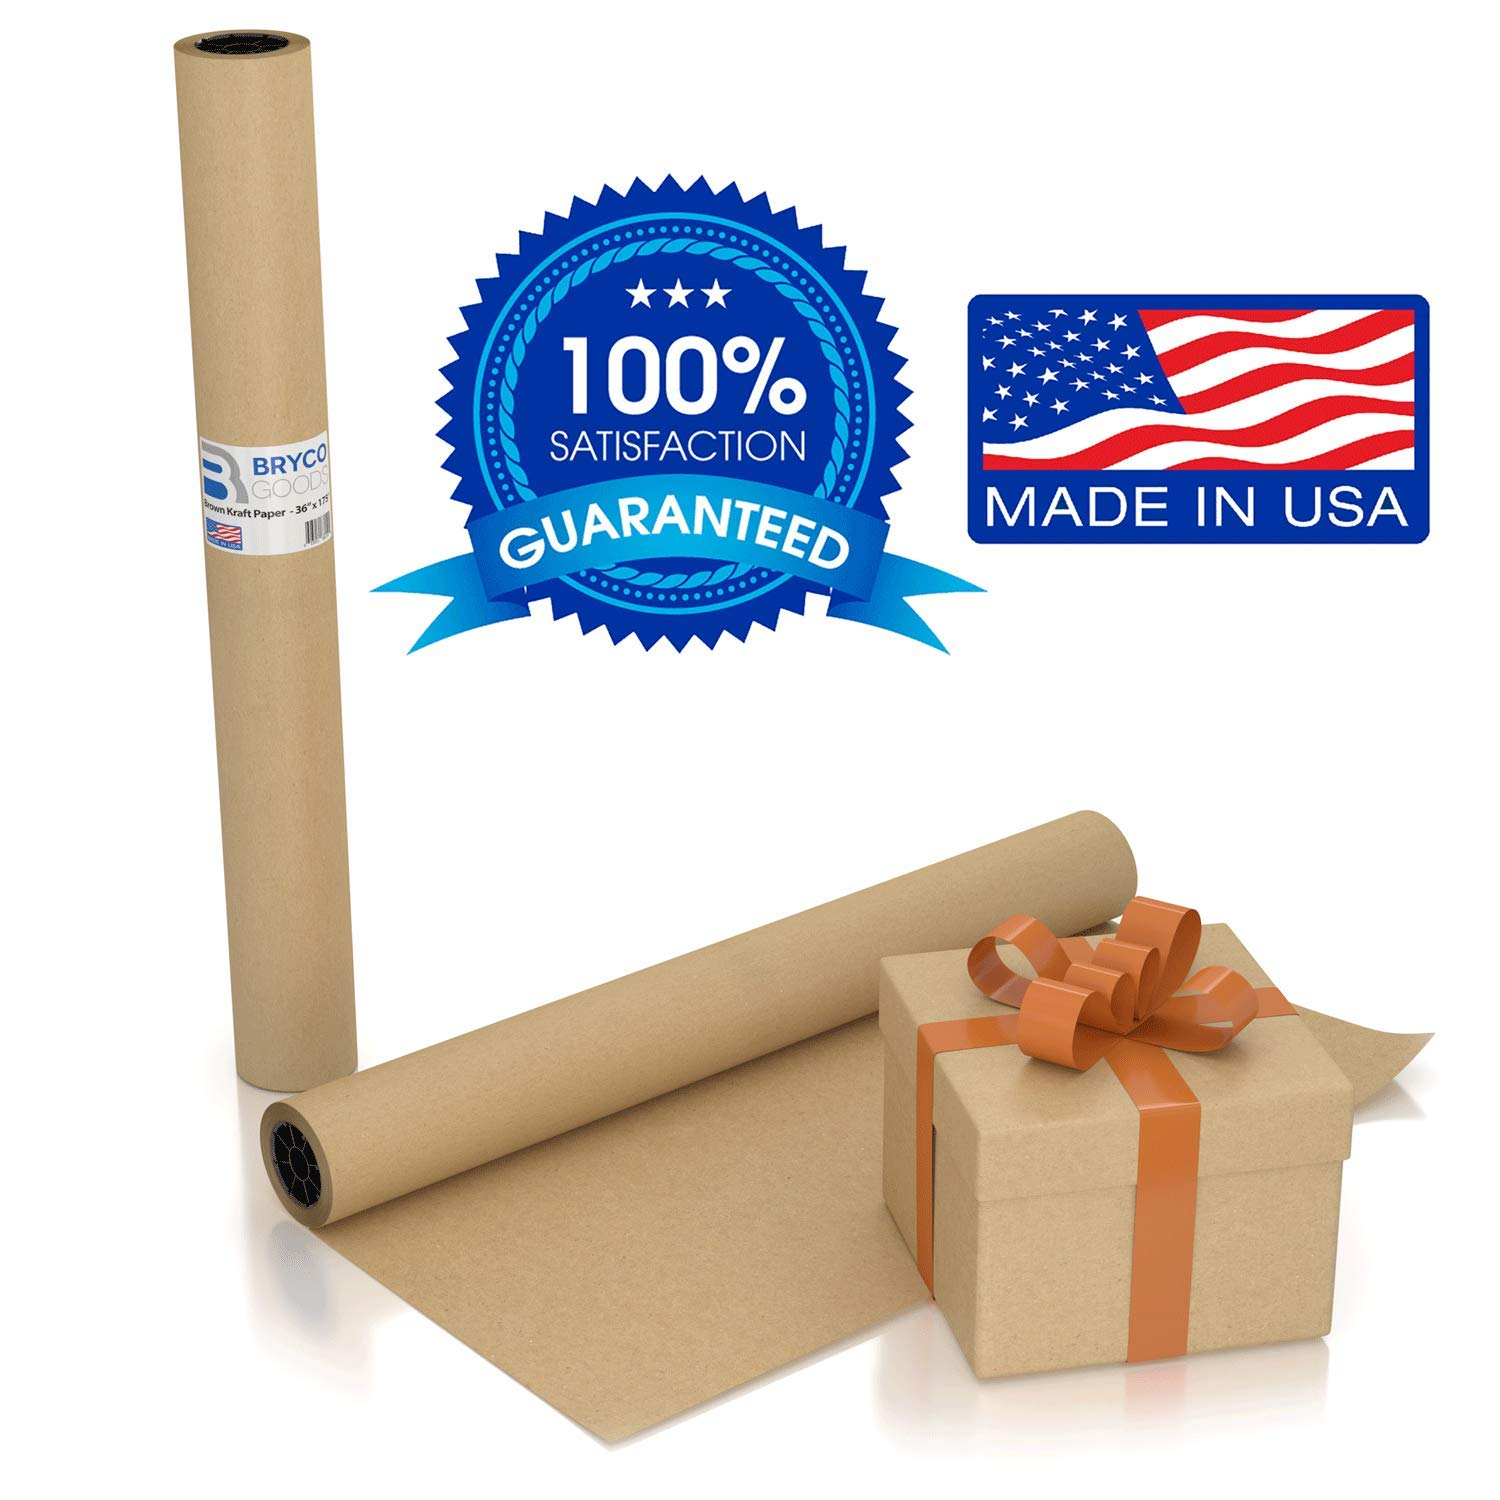 Large Brown Kraft Paper Roll - 36'' x 1200'' (100 ft) - Made in The USA - Ideal for Gift Wrapping, Packing, Moving, Postal, Shipping, Parcel, Wall Art, Crafts, Bulletin Boards, Floor Cover, Table Runner by Bryco Goods